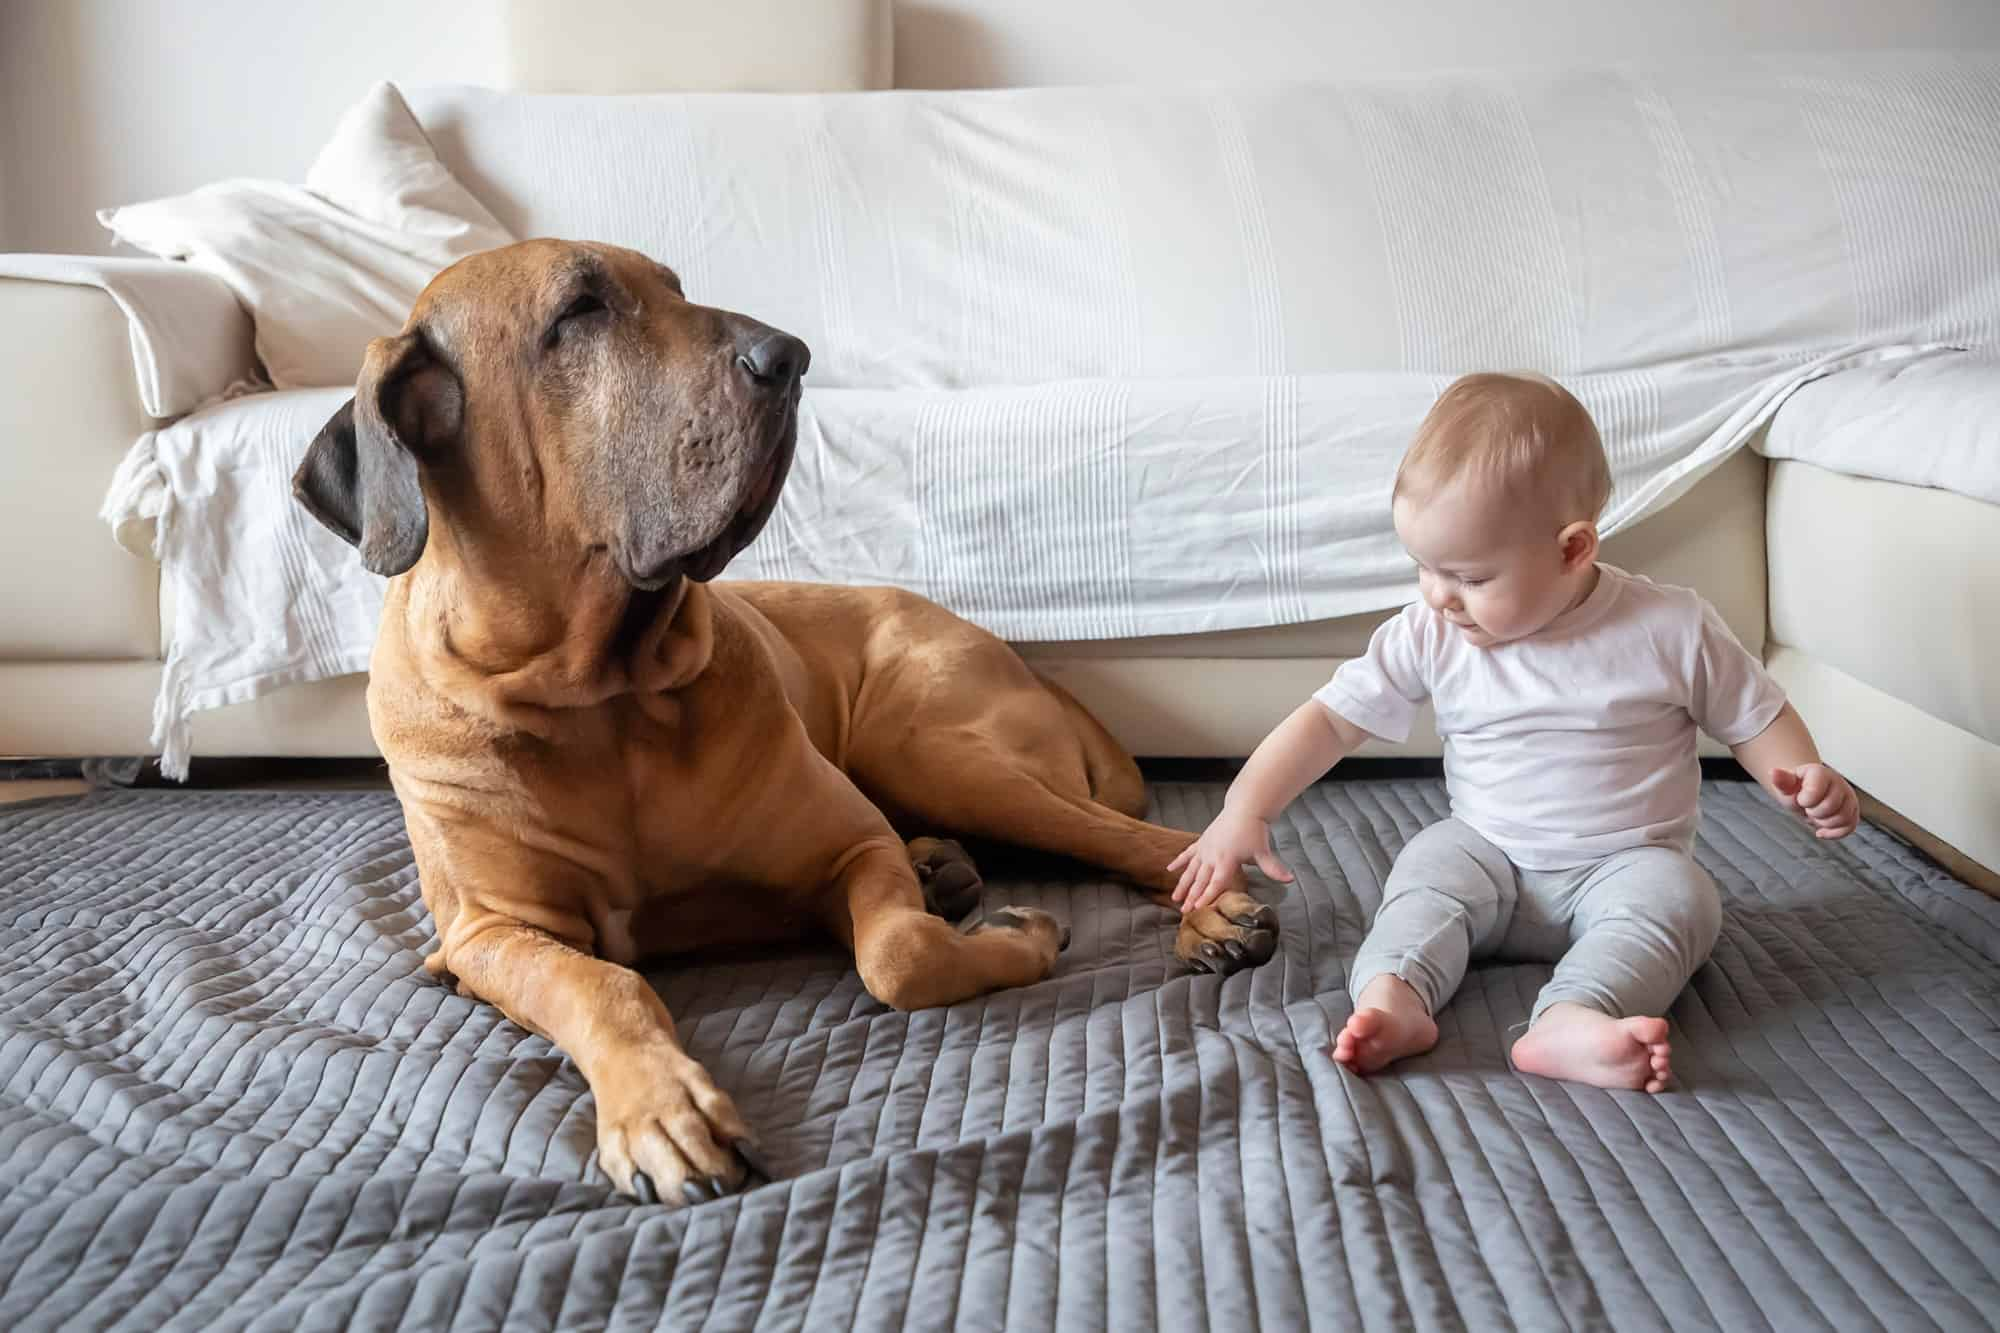 Little girl playing with big dog in home living room in white color. Dog is fila brasileiro breed.